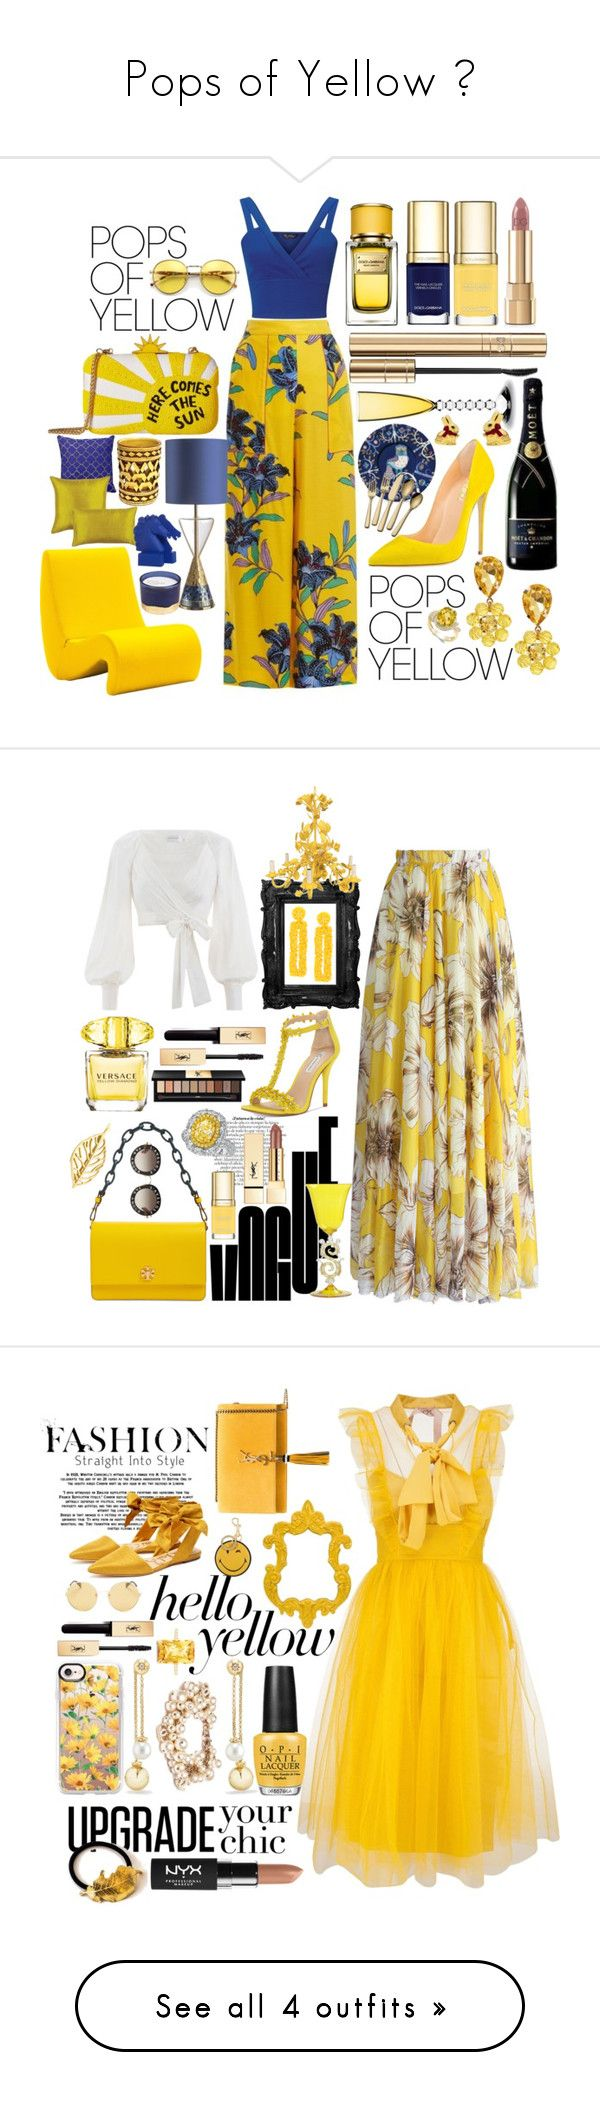 """Pops of Yellow 🌻"" by pulseofthematter ❤ liked on Polyvore featuring Diane Von Furstenberg, Miss Selfridge, Alice + Olivia, Dolce&Gabbana, Vitra, Baccarat, iittala, Lindt, Ballard Designs and Sophia"